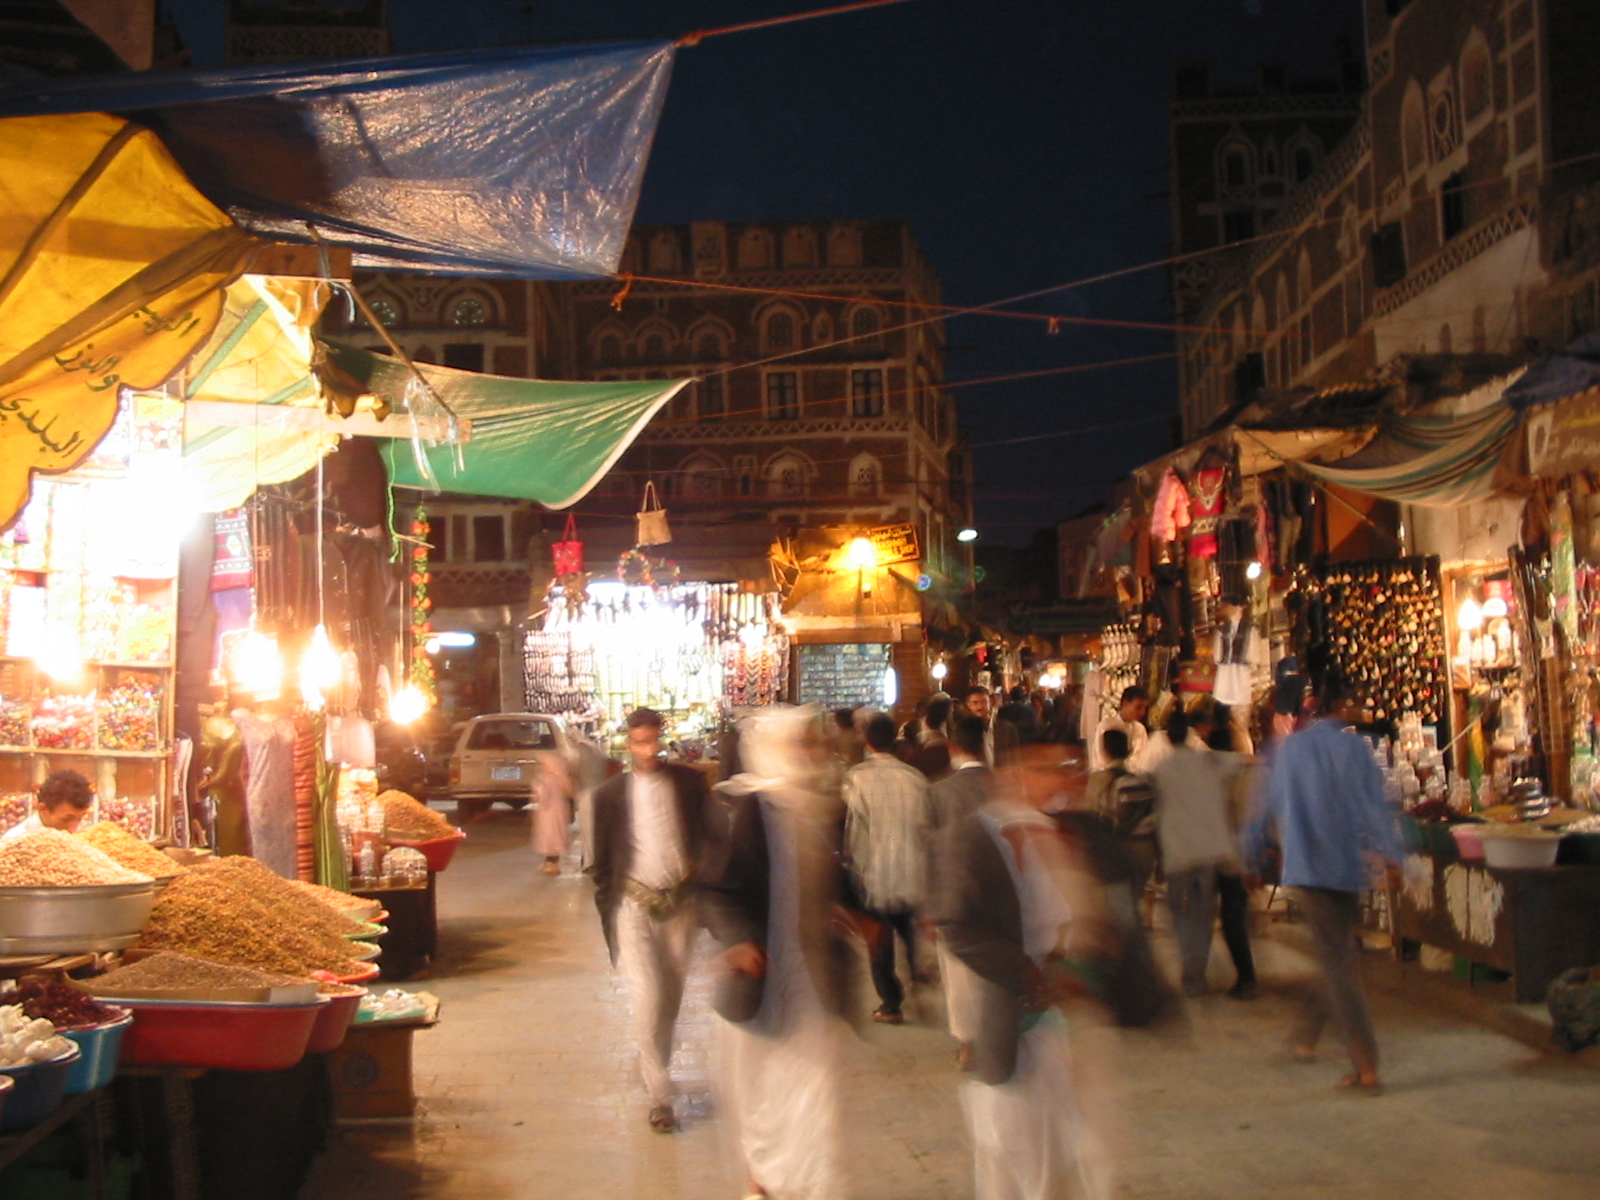 Market in Sana'a, Yemen's capital city. (Photo courtesy of YXO / flickr via The Tower)